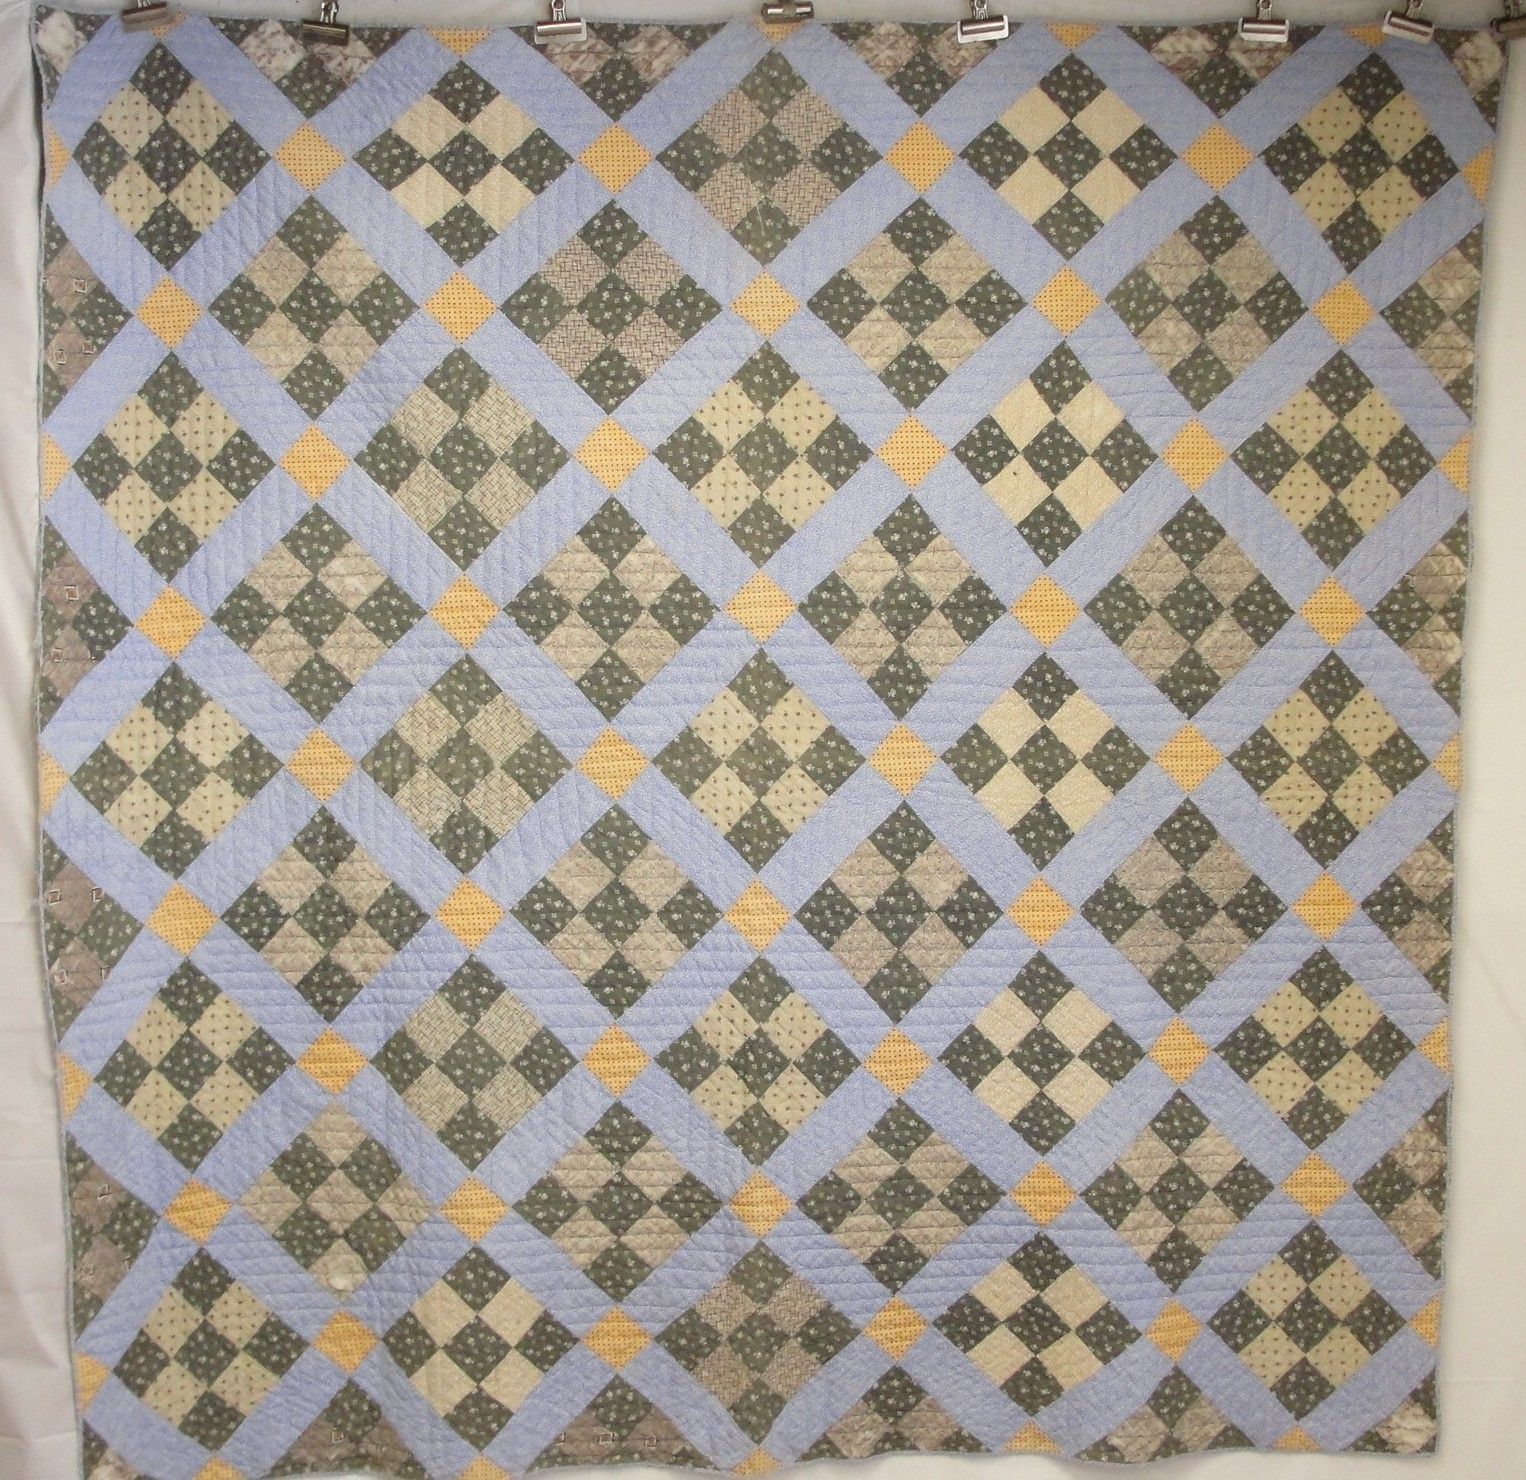 Antique Century Maine Hand Sched Nine Patch Geometric Patchwork Calico Quilt Blue Green Tan Yellow